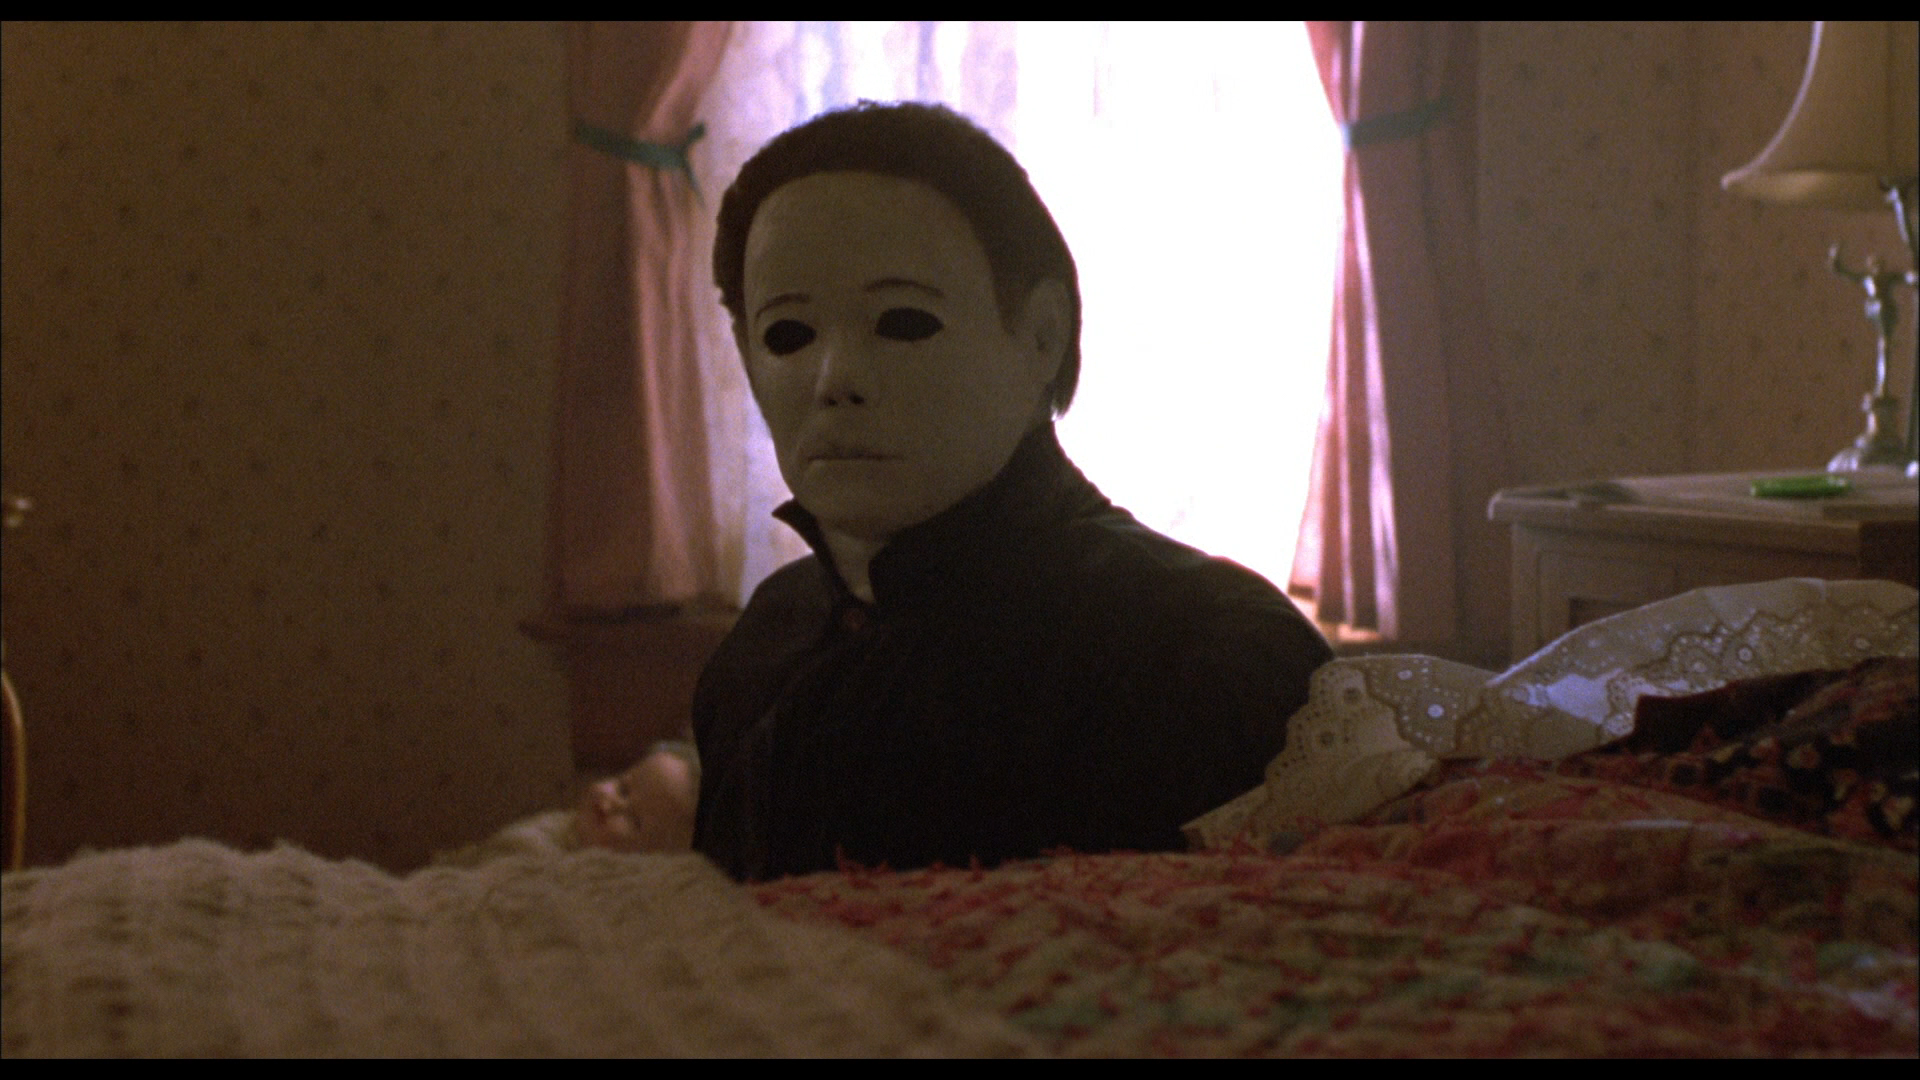 Halloween 4 Halloween 5 Double Feature Movie free download HD 720p